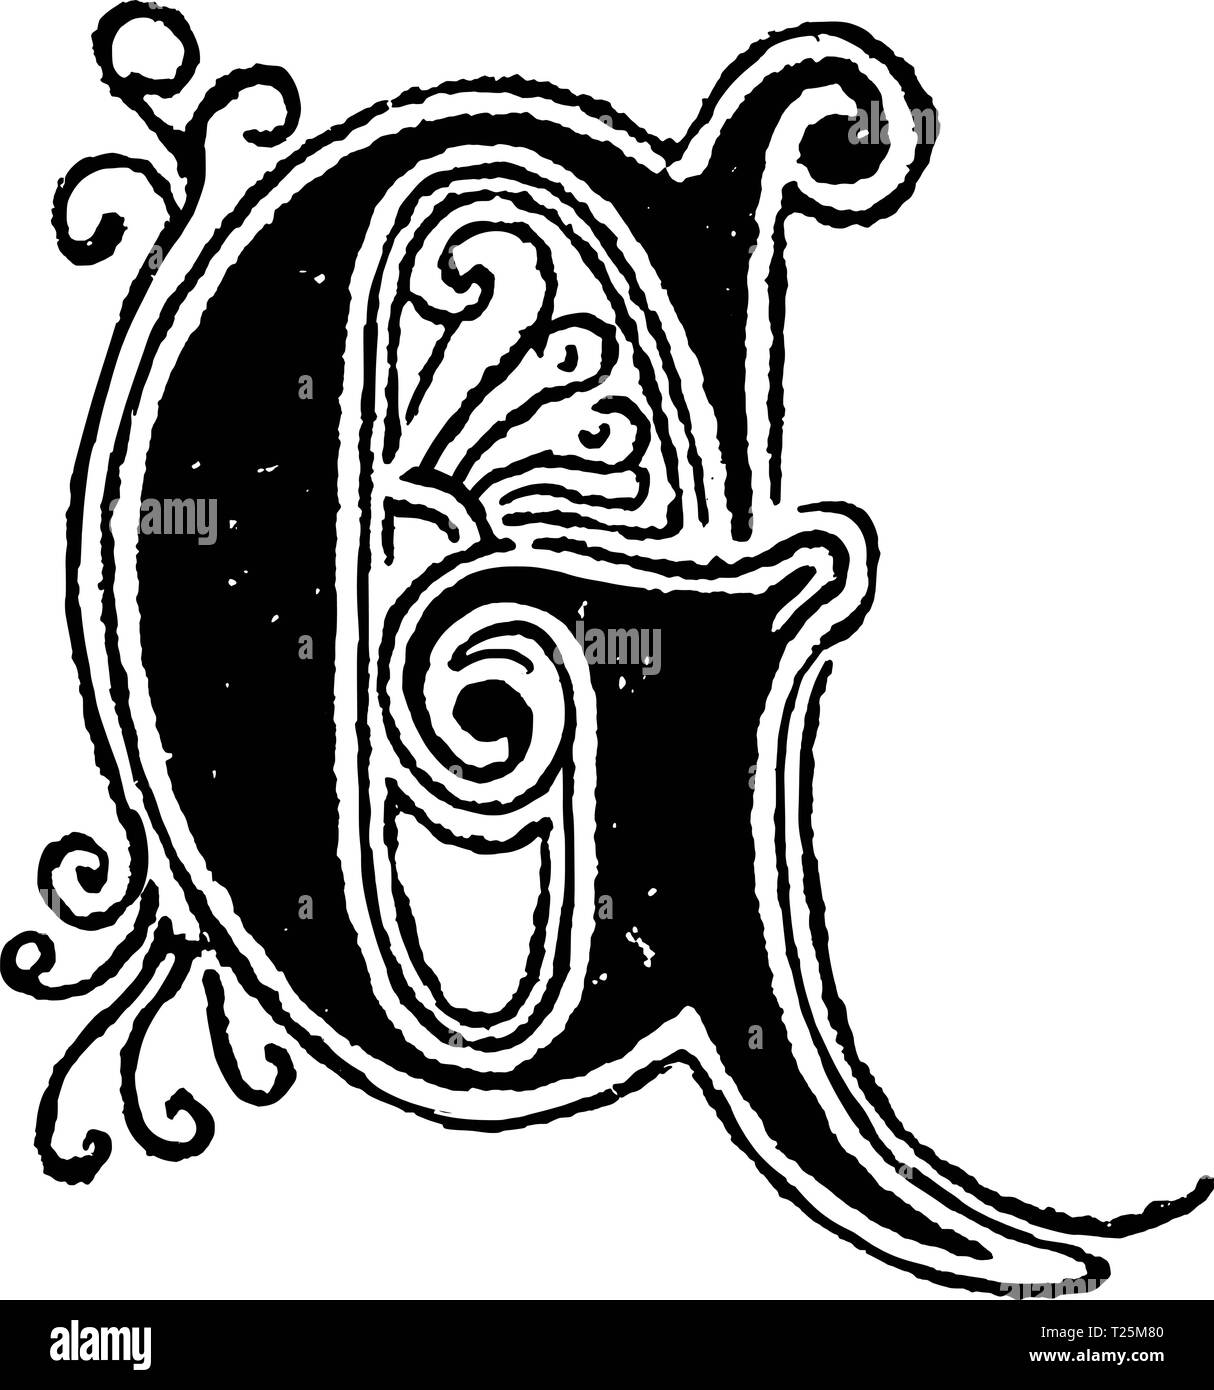 Vintage antique line drawing or engraving of decorative capital letter G with ornament or embellishment around and inside. From Biblische Geschichte des alten und neuen Testaments, Germany 1859. - Stock Image